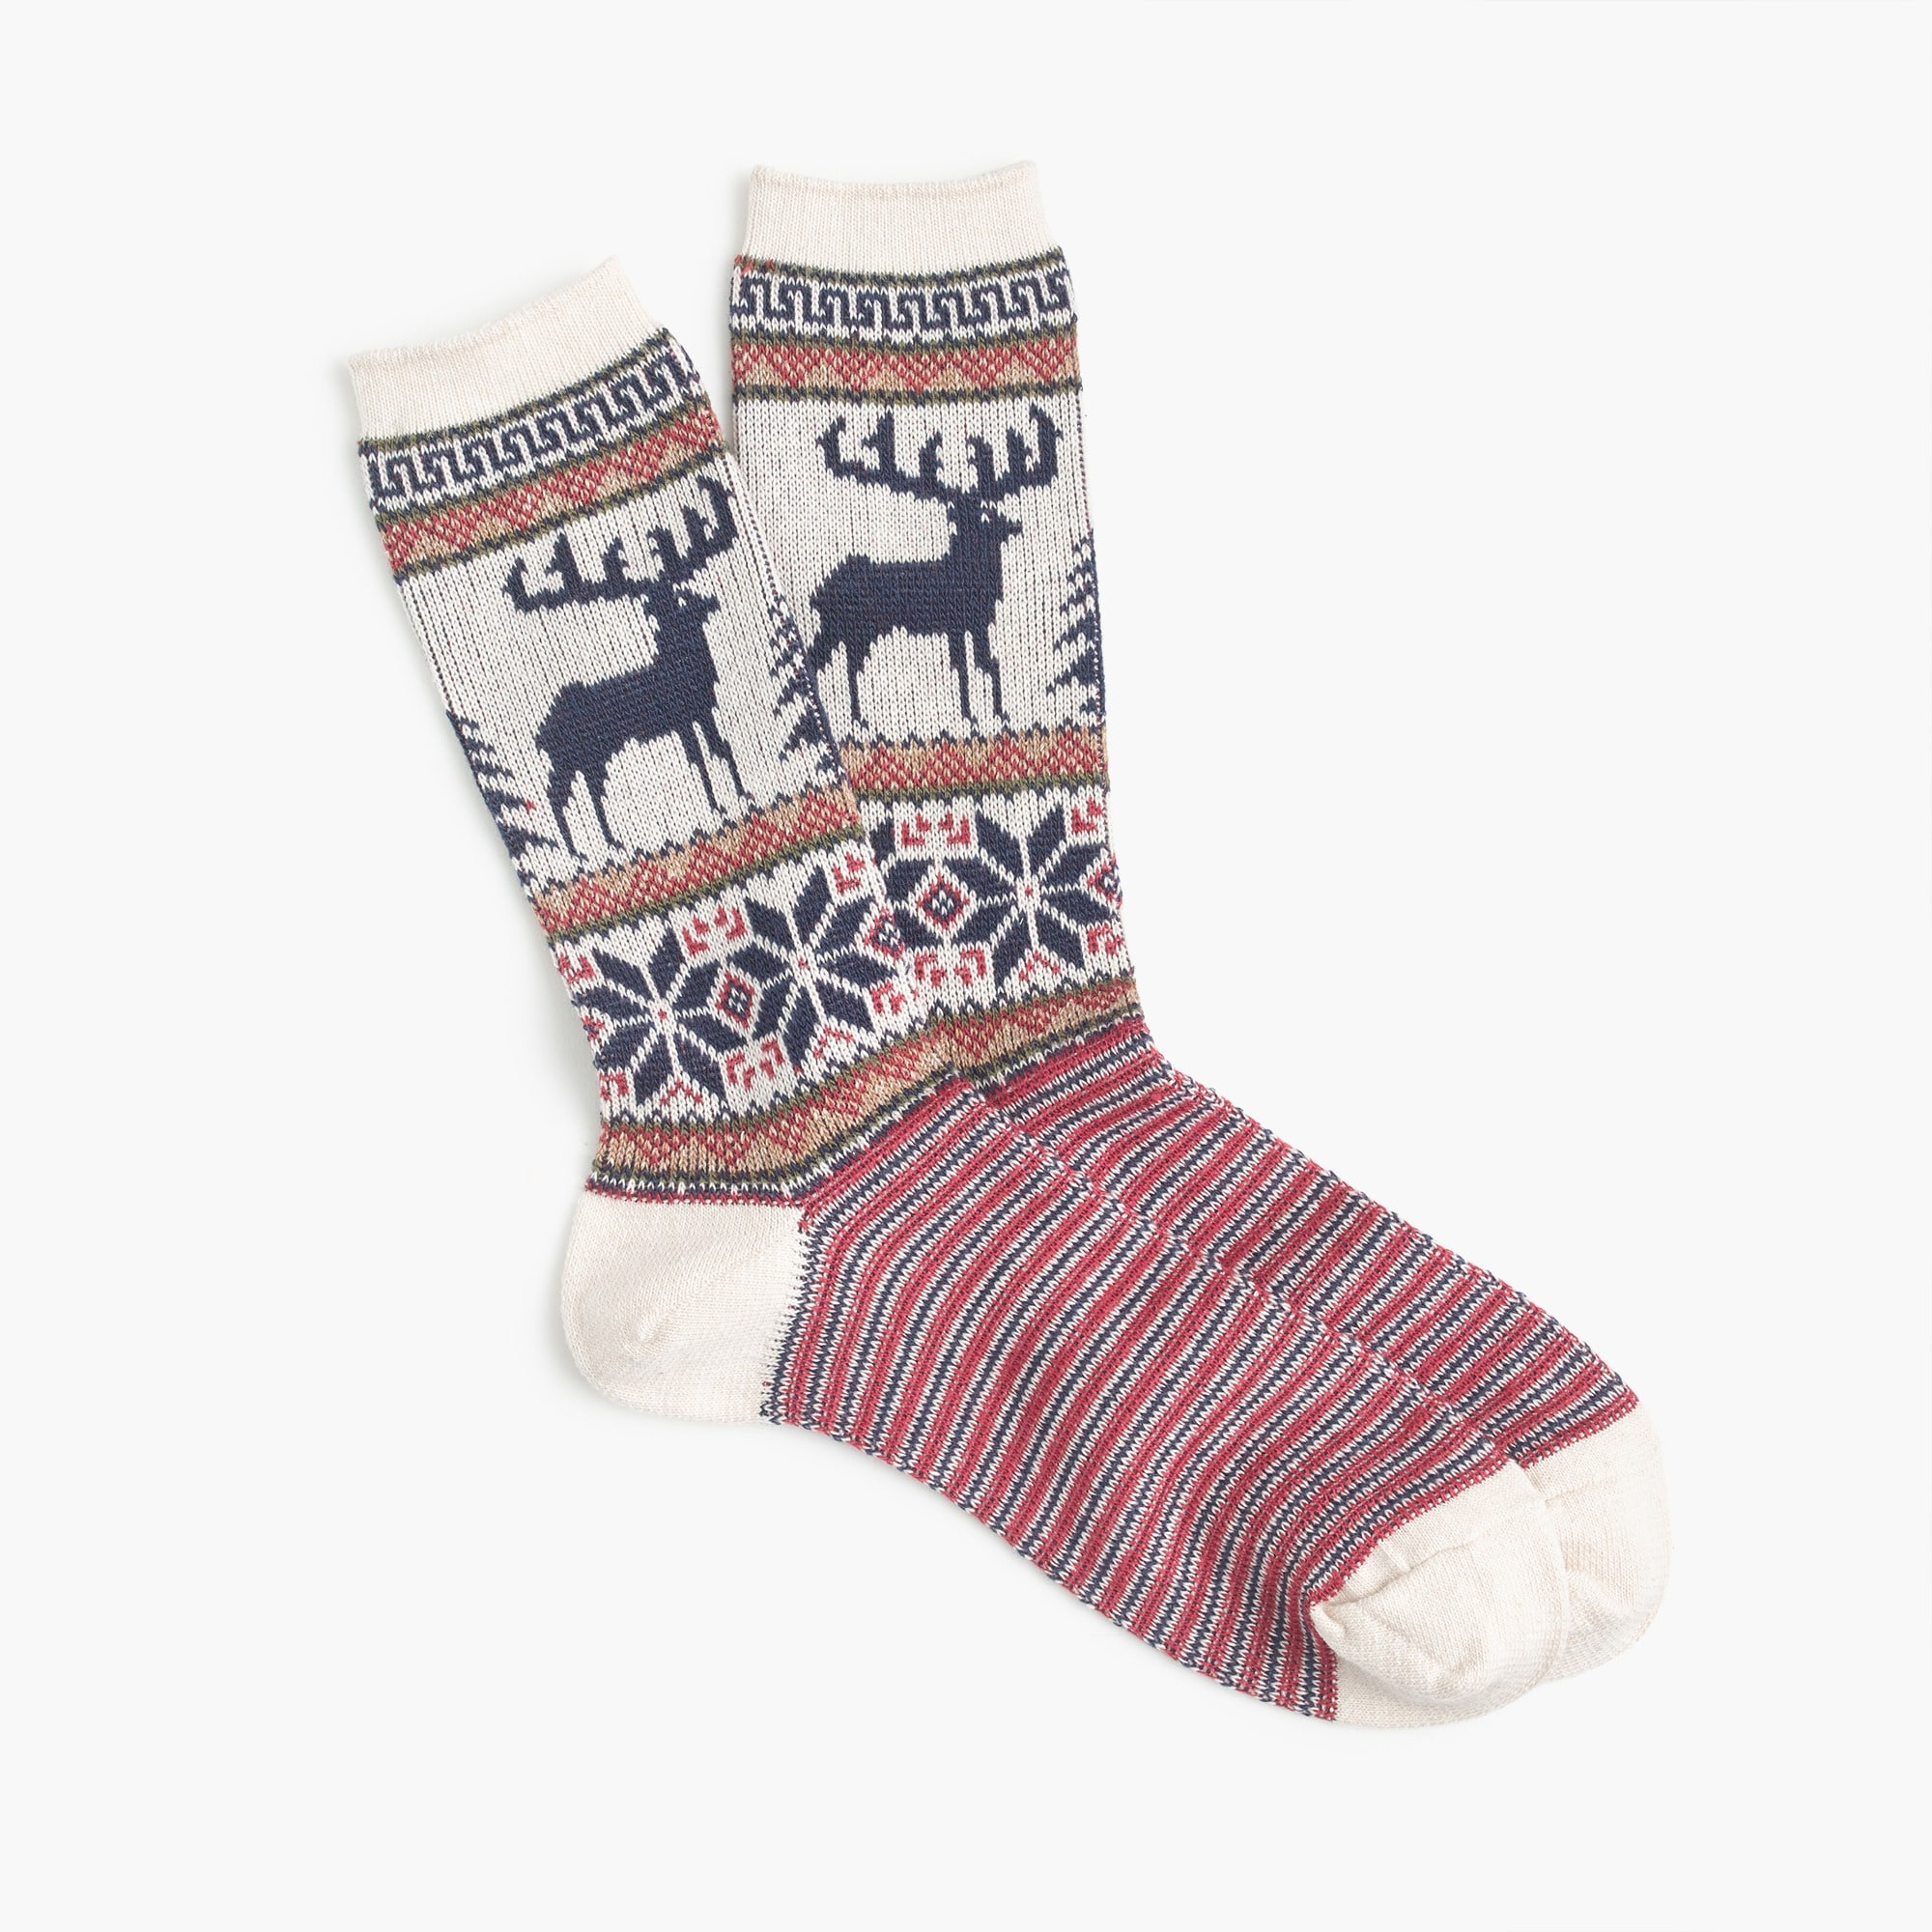 Anonymous Ism™ stag print socks men socks c